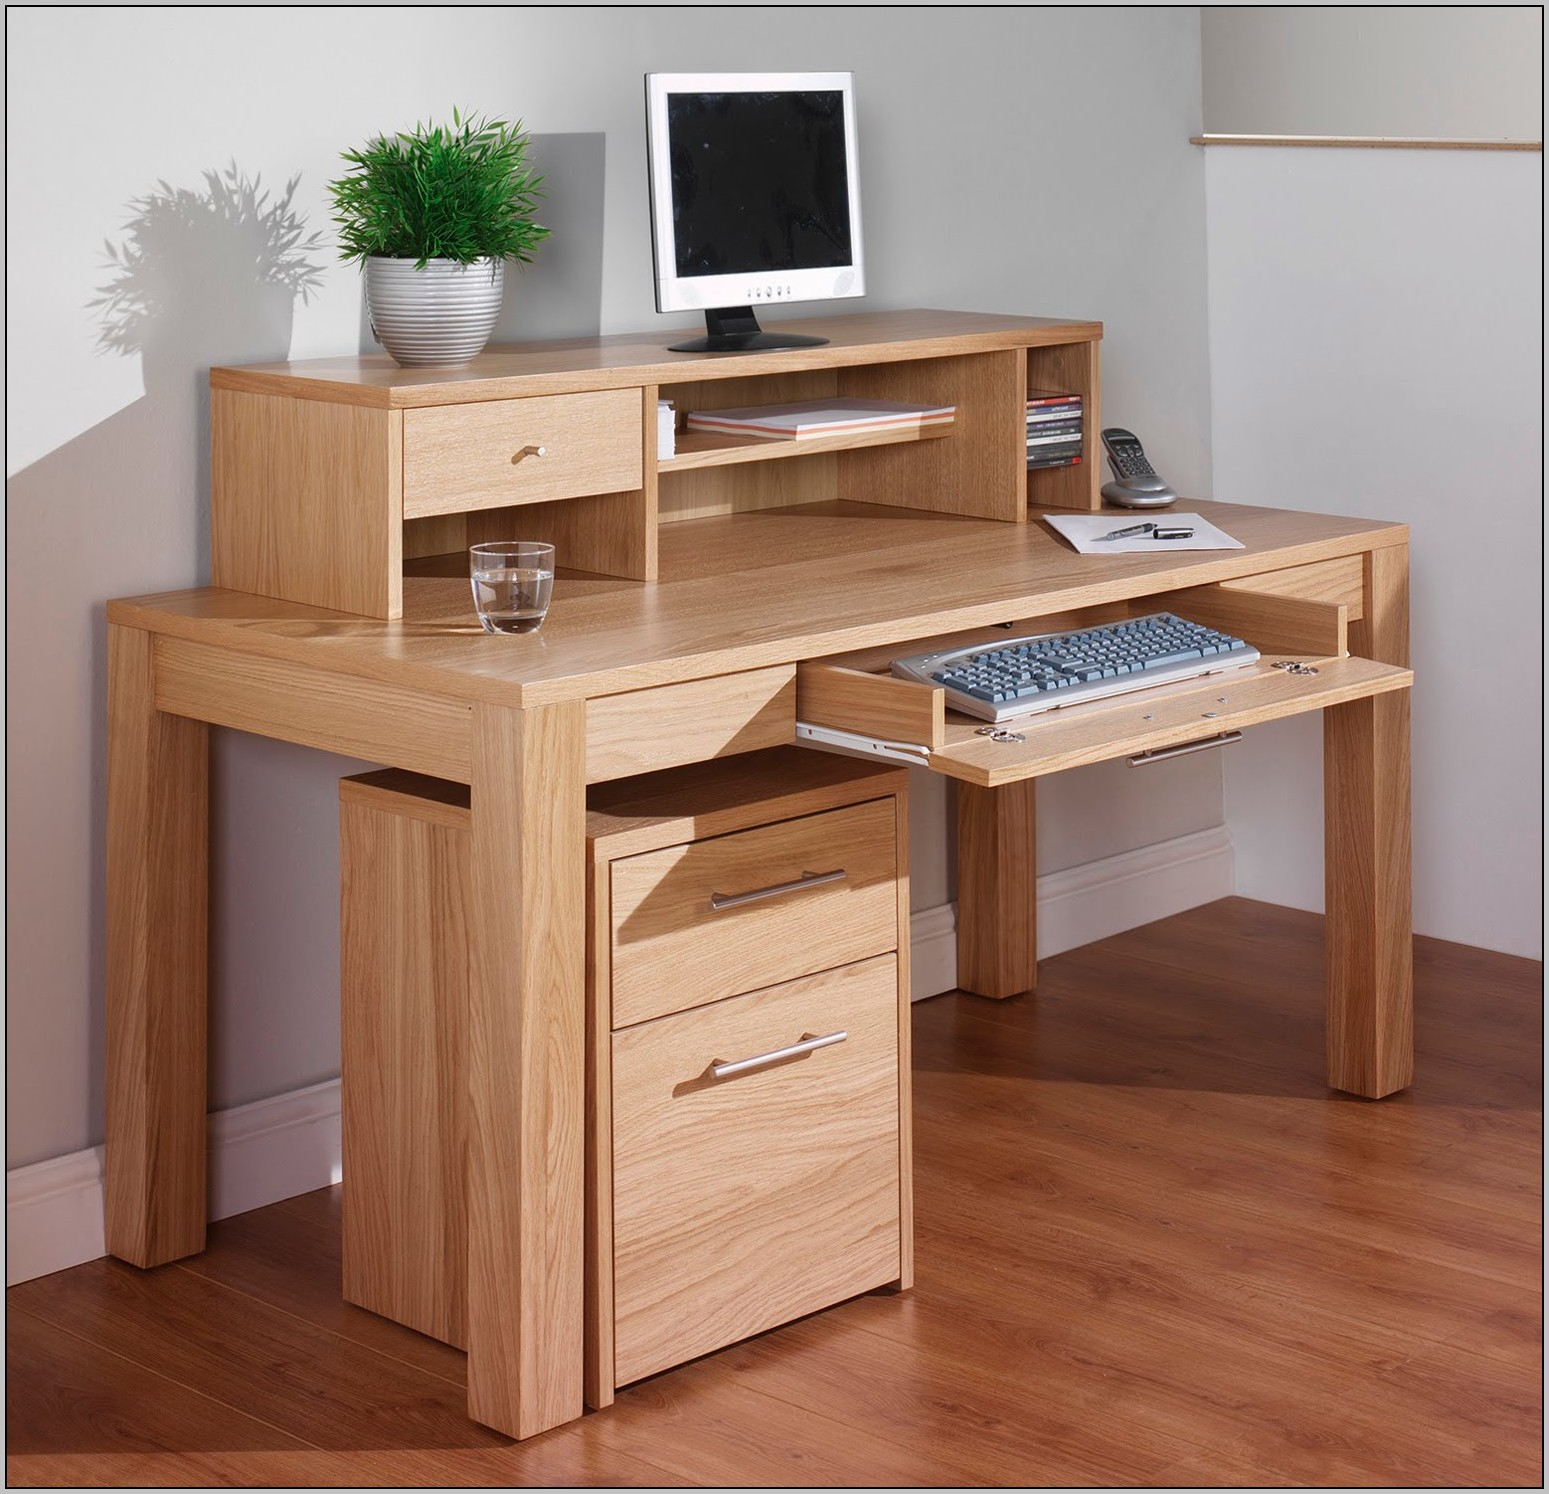 cool computer desks design desk home design ideas yaqorx3doj20346. Black Bedroom Furniture Sets. Home Design Ideas